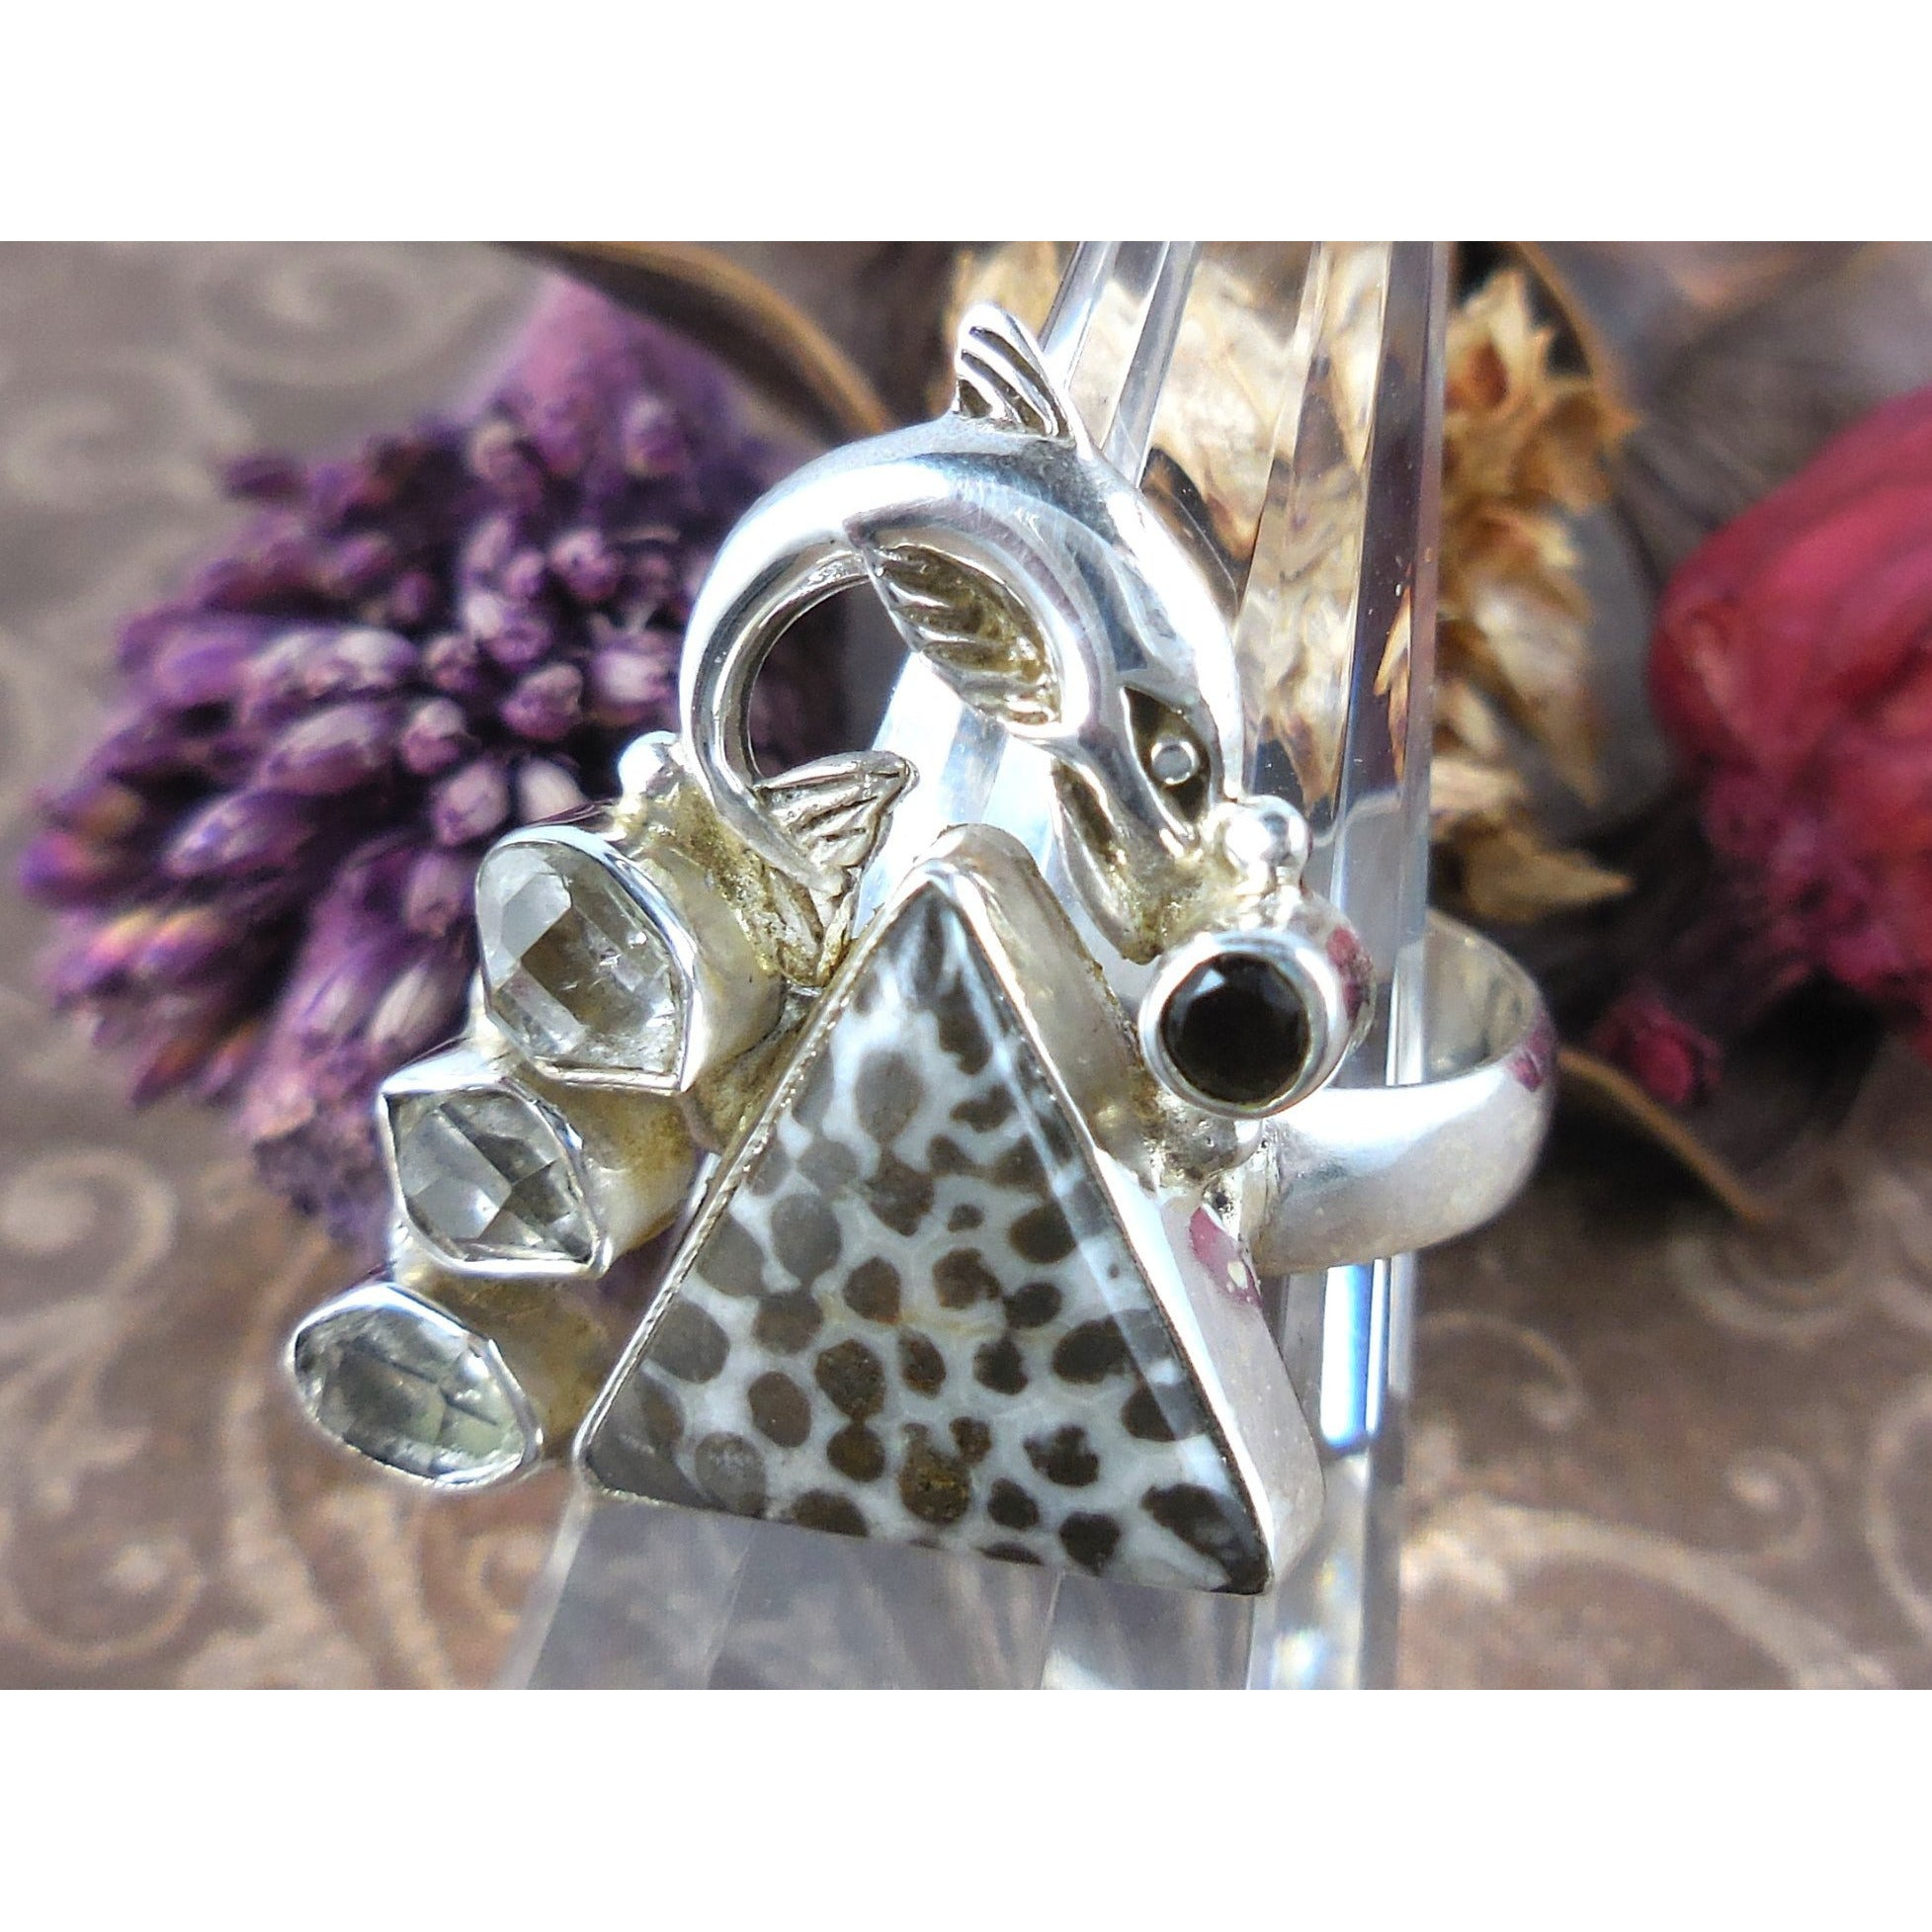 Stingray Coral, Herkimer Diamond (Quartz), and Onyx 925 Sterling Silver Dolphin Ring - Size 7.75